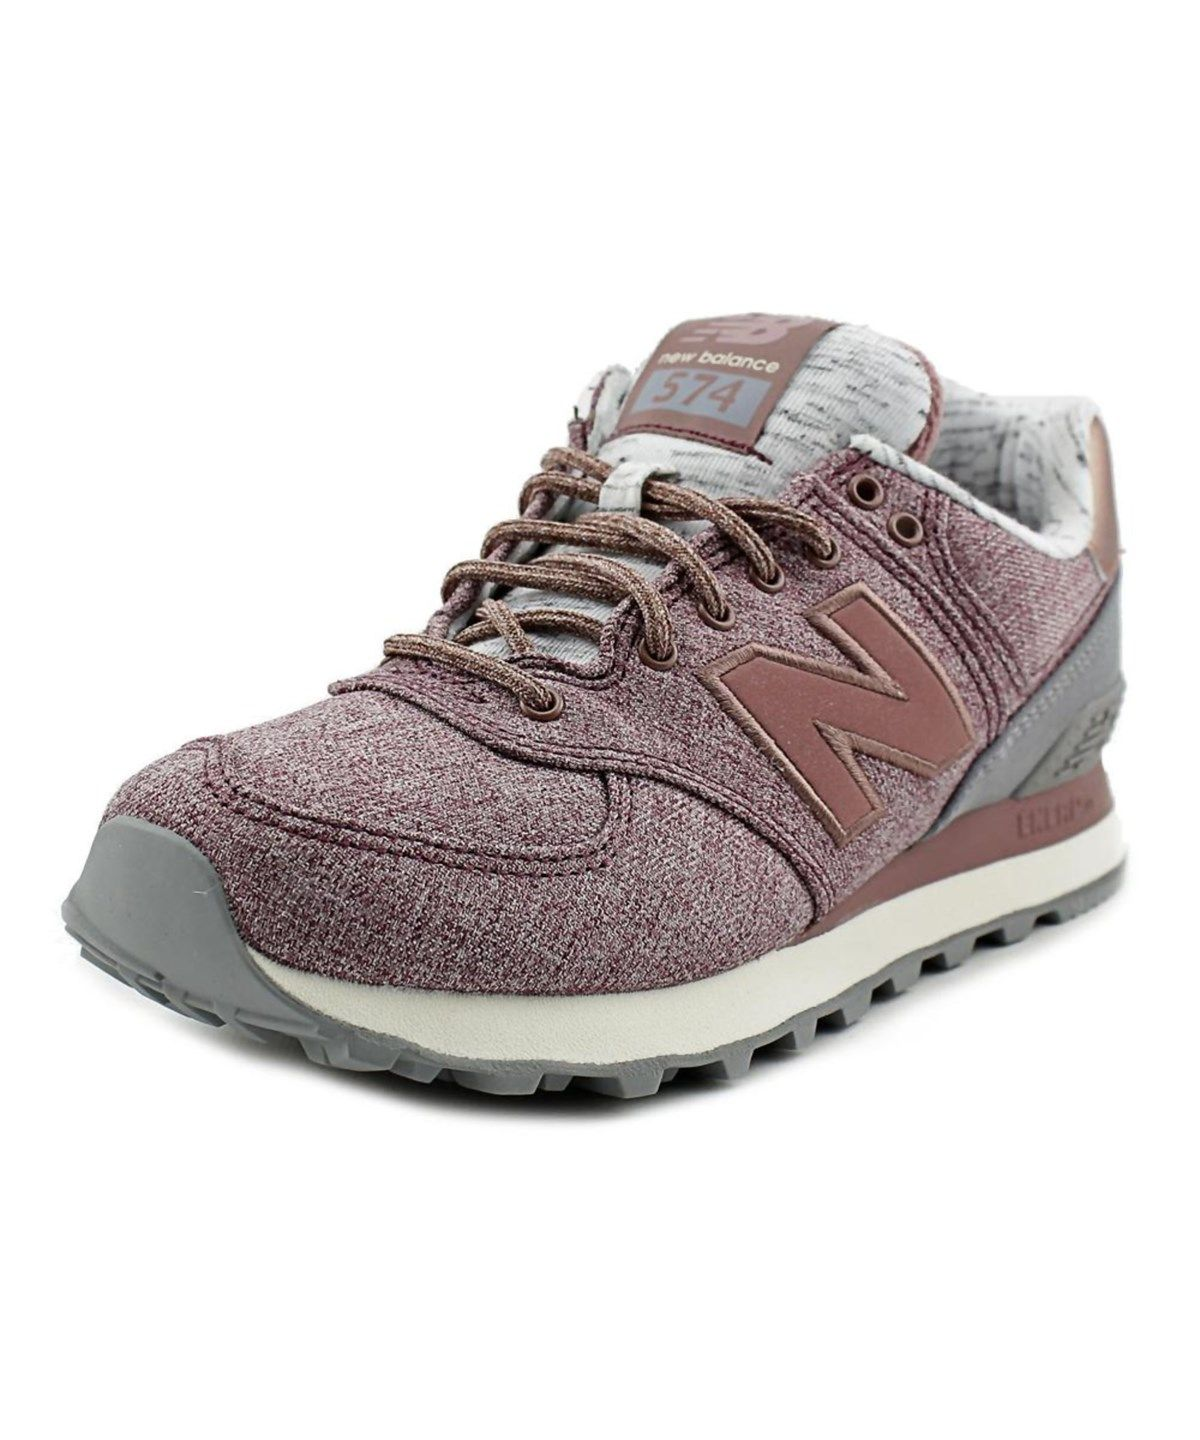 358f14a623 NEW BALANCE NEW BALANCE WL574 WOMEN CANVAS PINK FASHION SNEAKERS ...